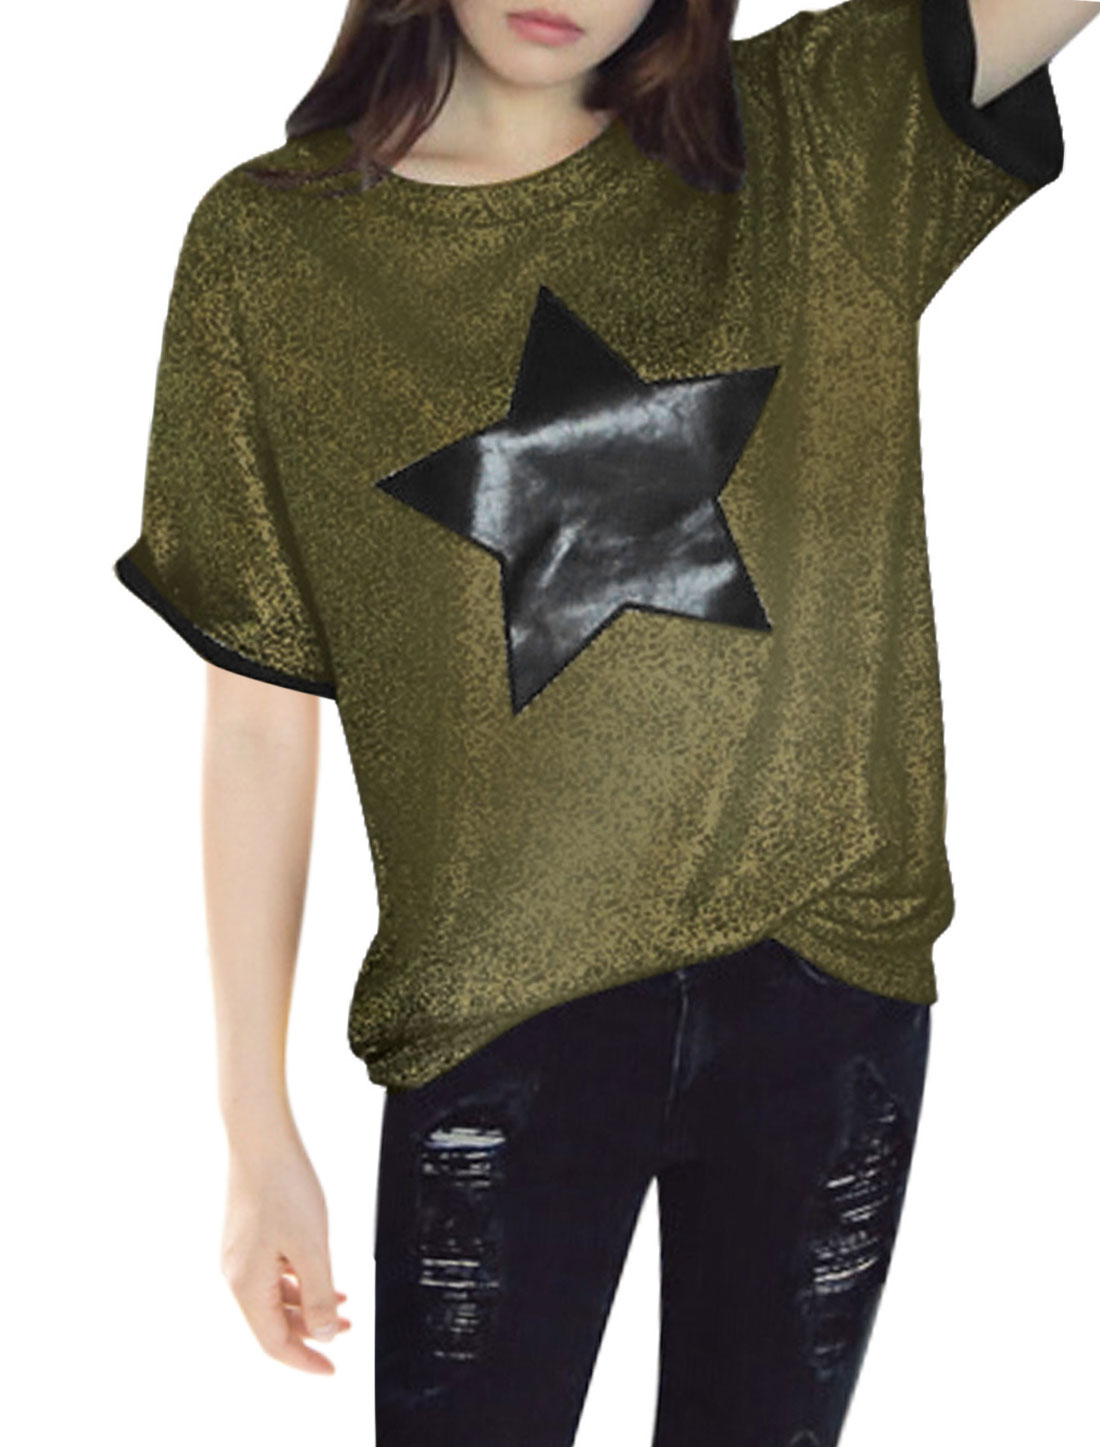 Ladies Short Sleeve Star Print Shinny Design Tunic T Shirt Gold Tone XS